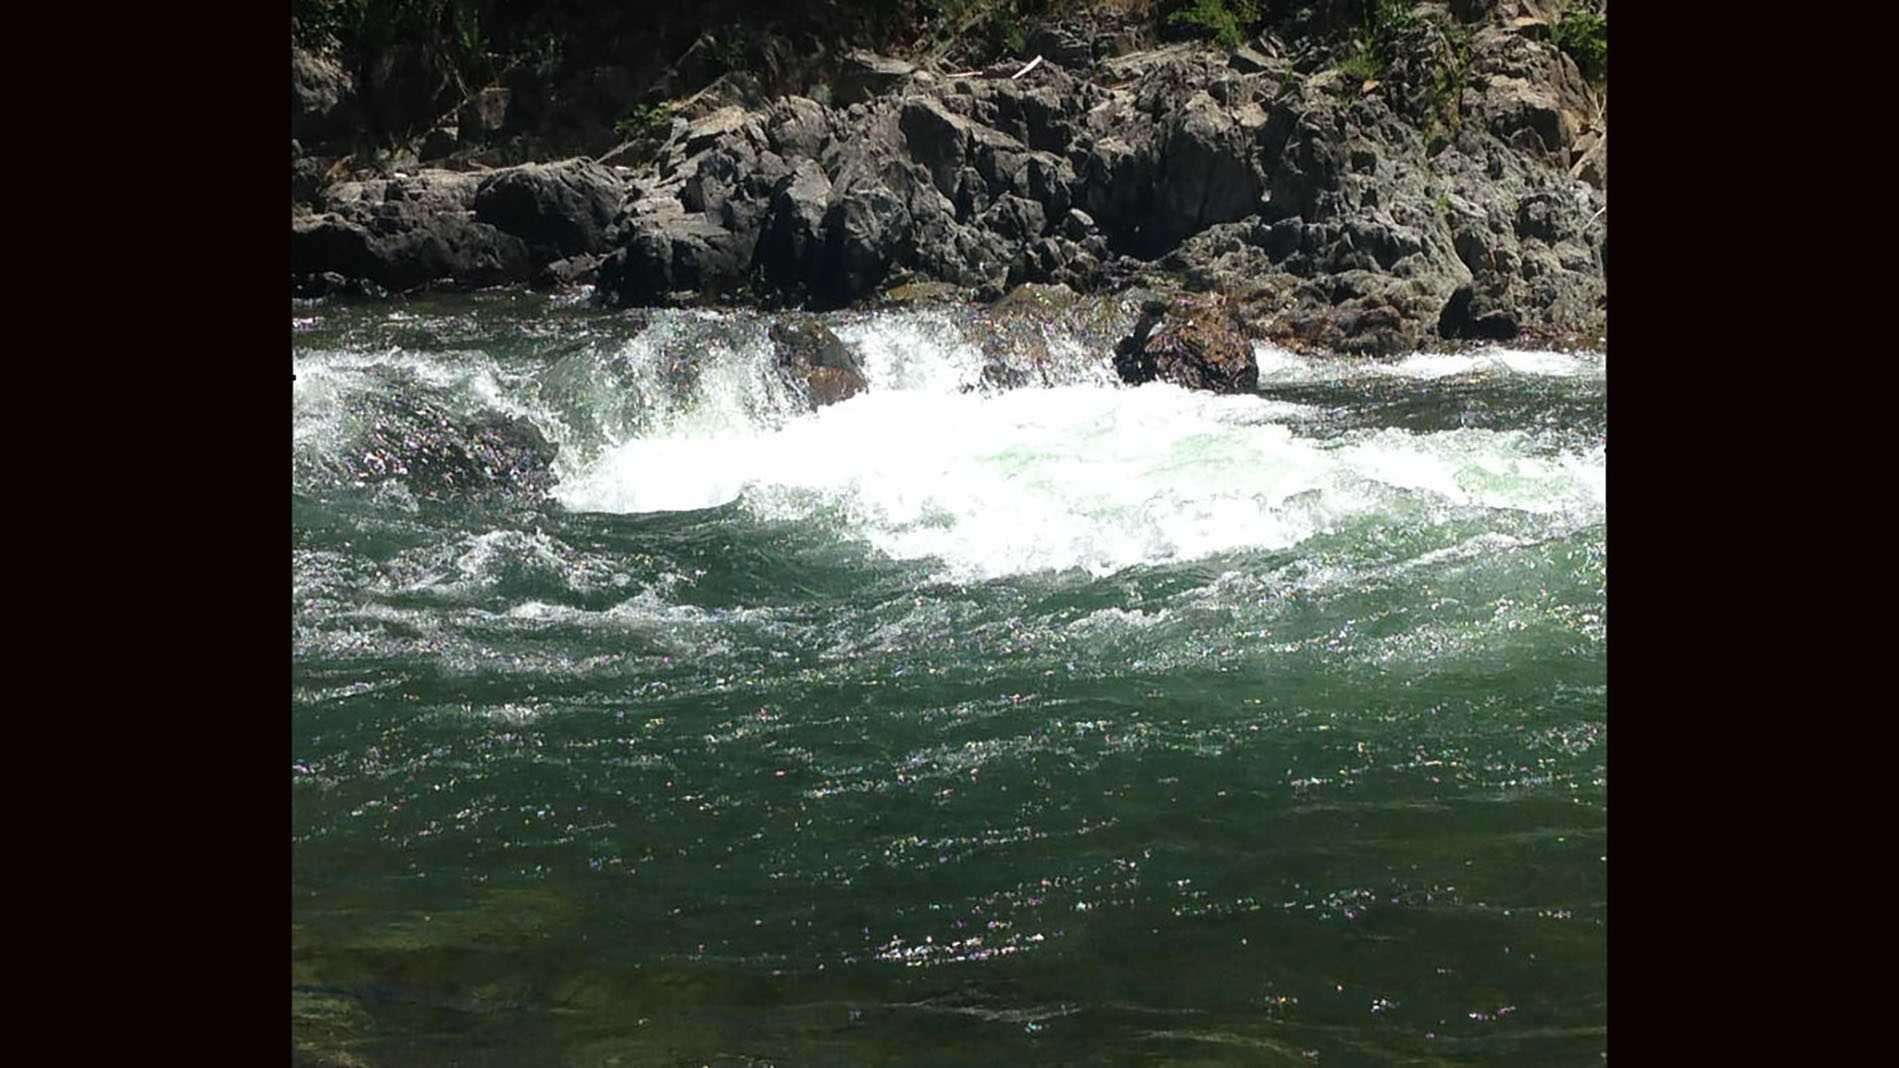 Raging waters Tuesday along the North Fork of the American River.